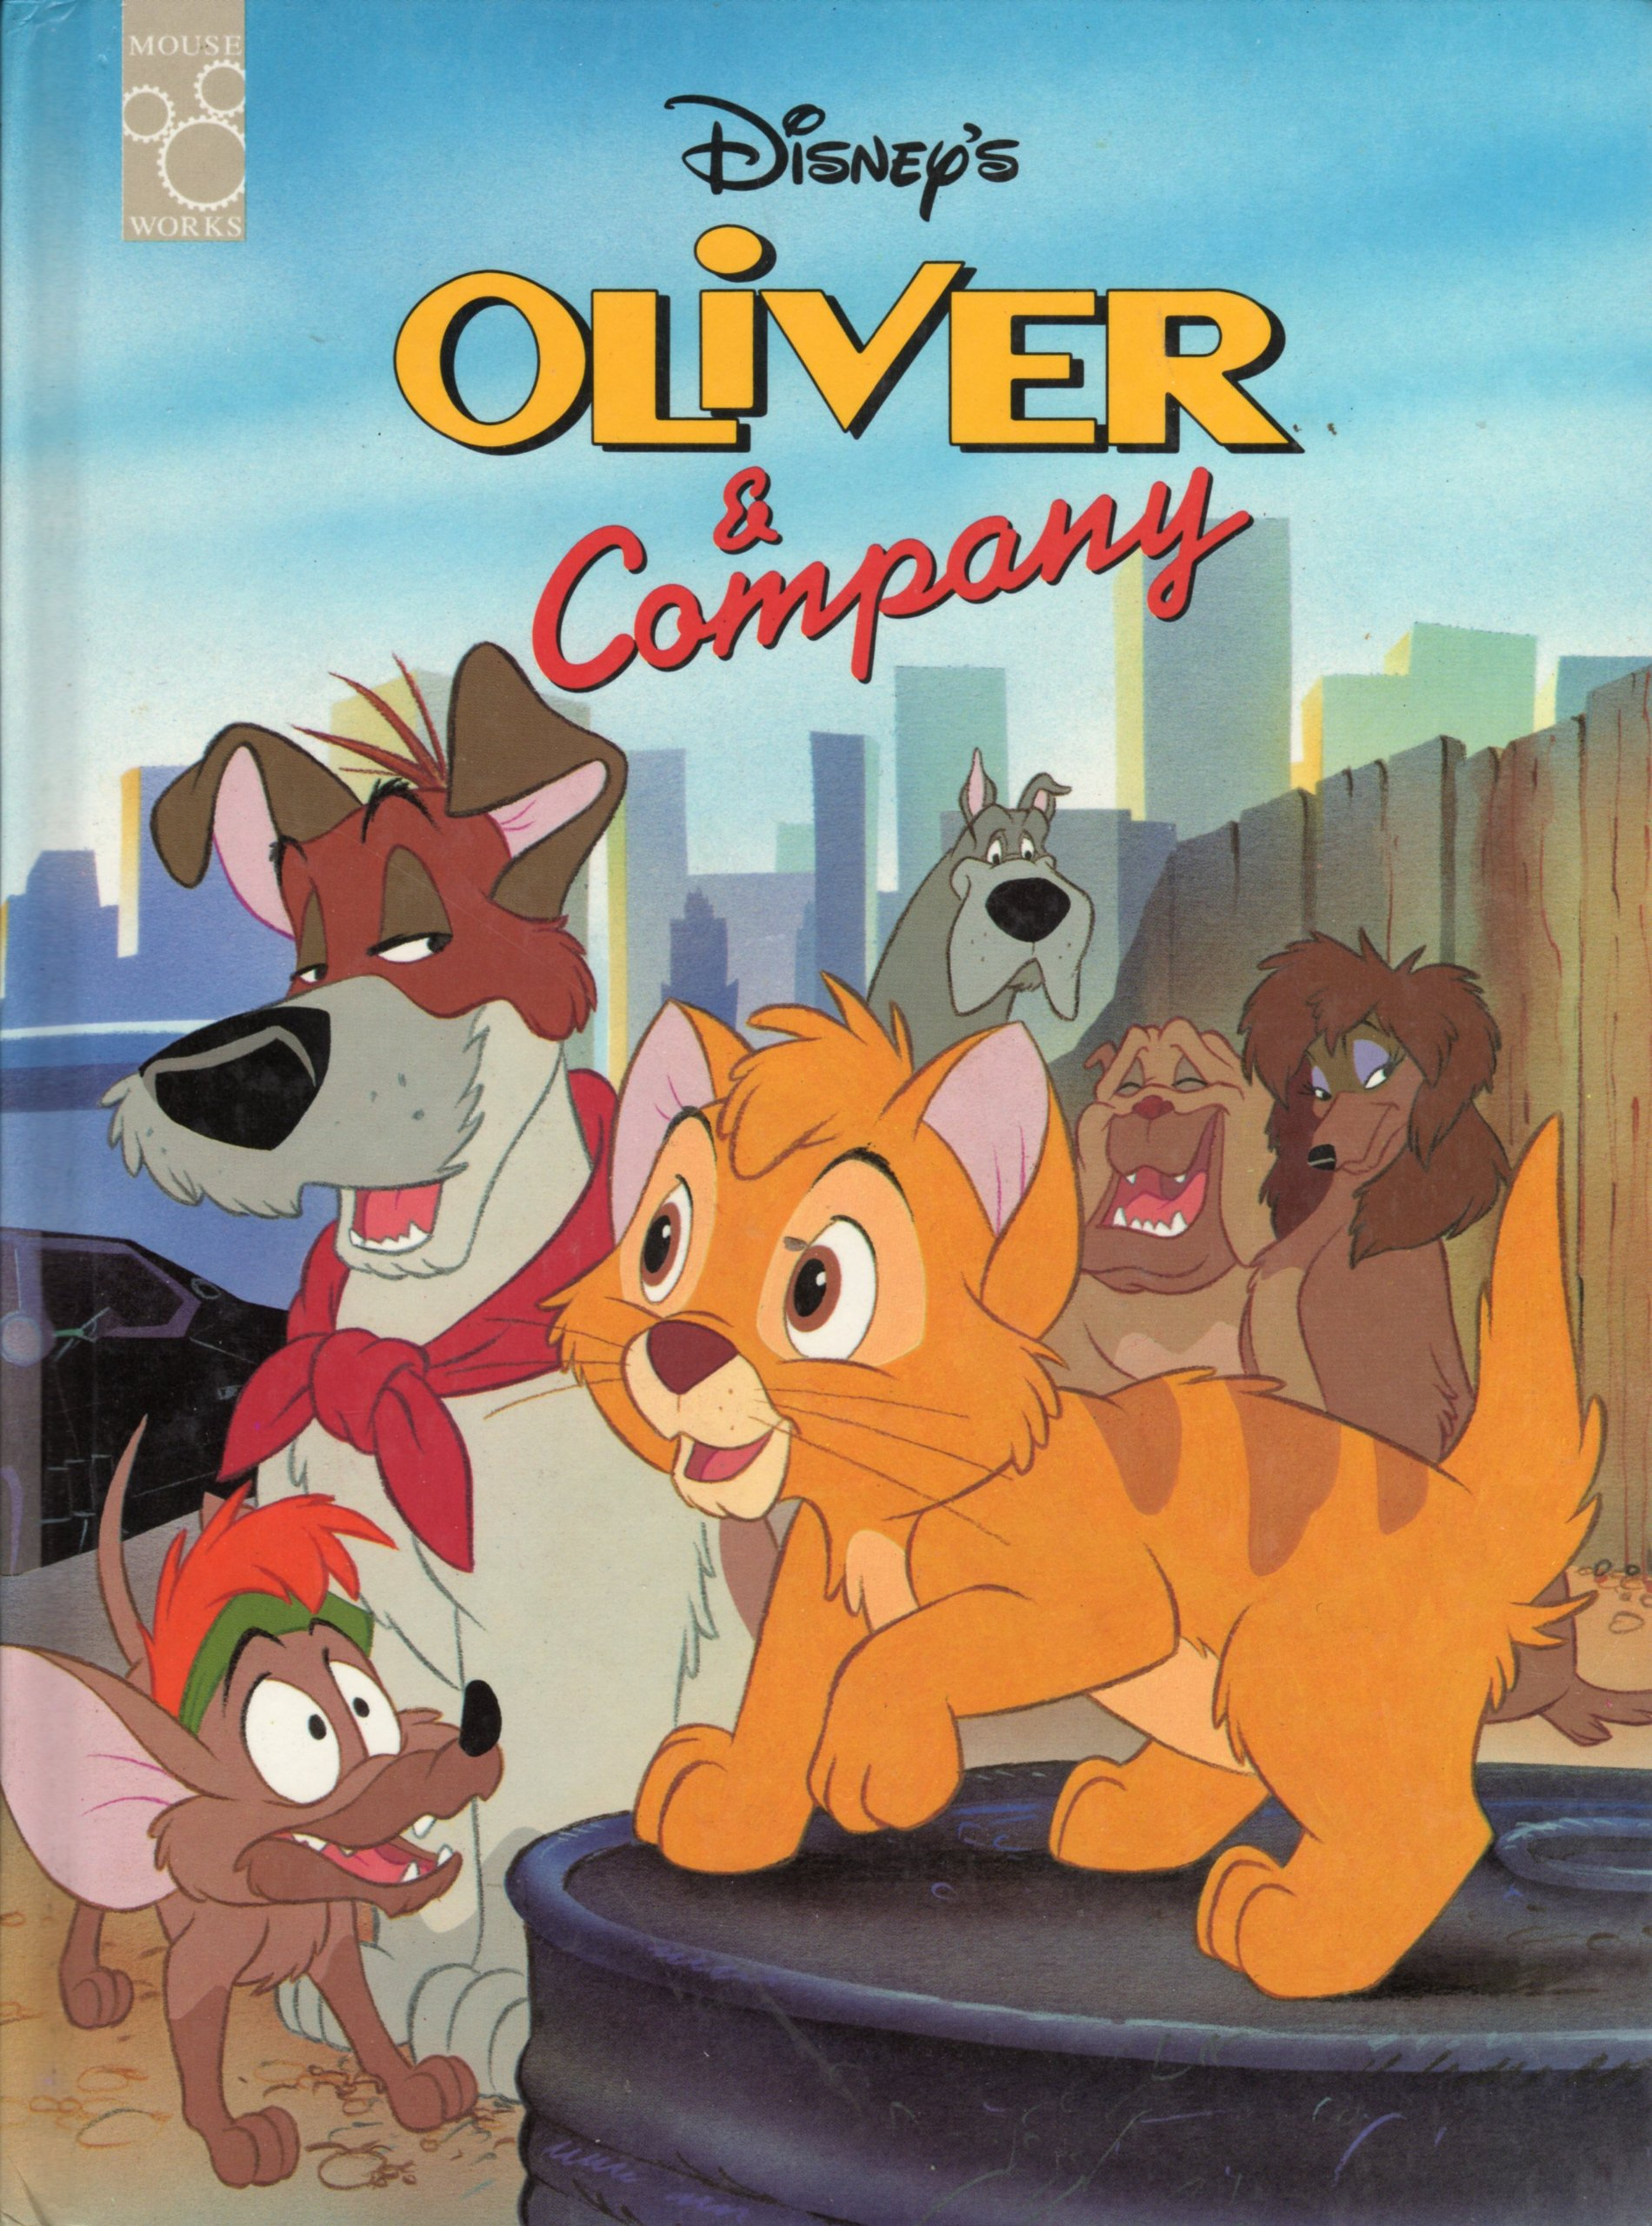 disney u0027s oliver and company mouse works classic storybook